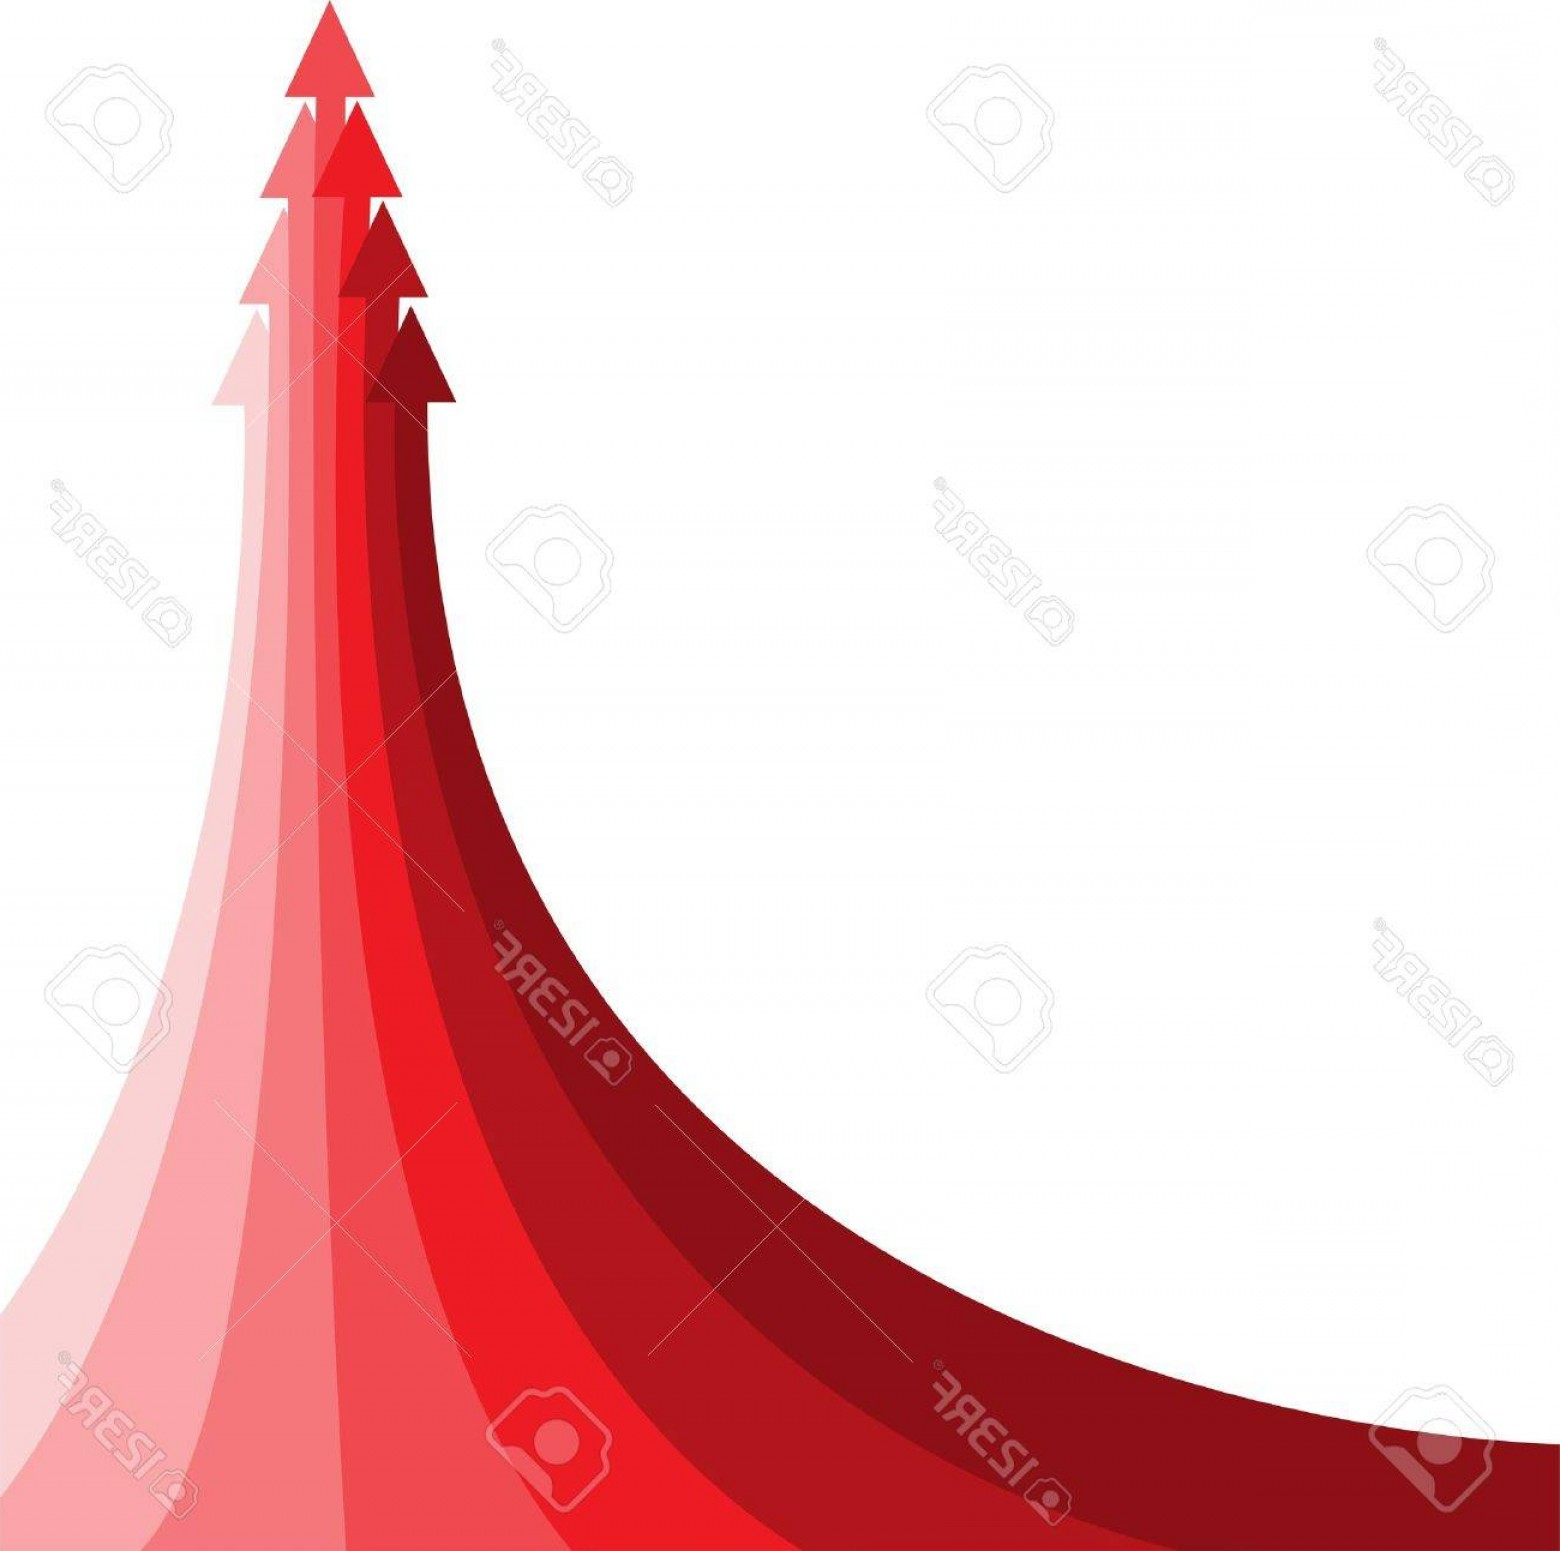 Small Arrow Vector: Photothe Big Red Arrow Consisting Of The Several Small